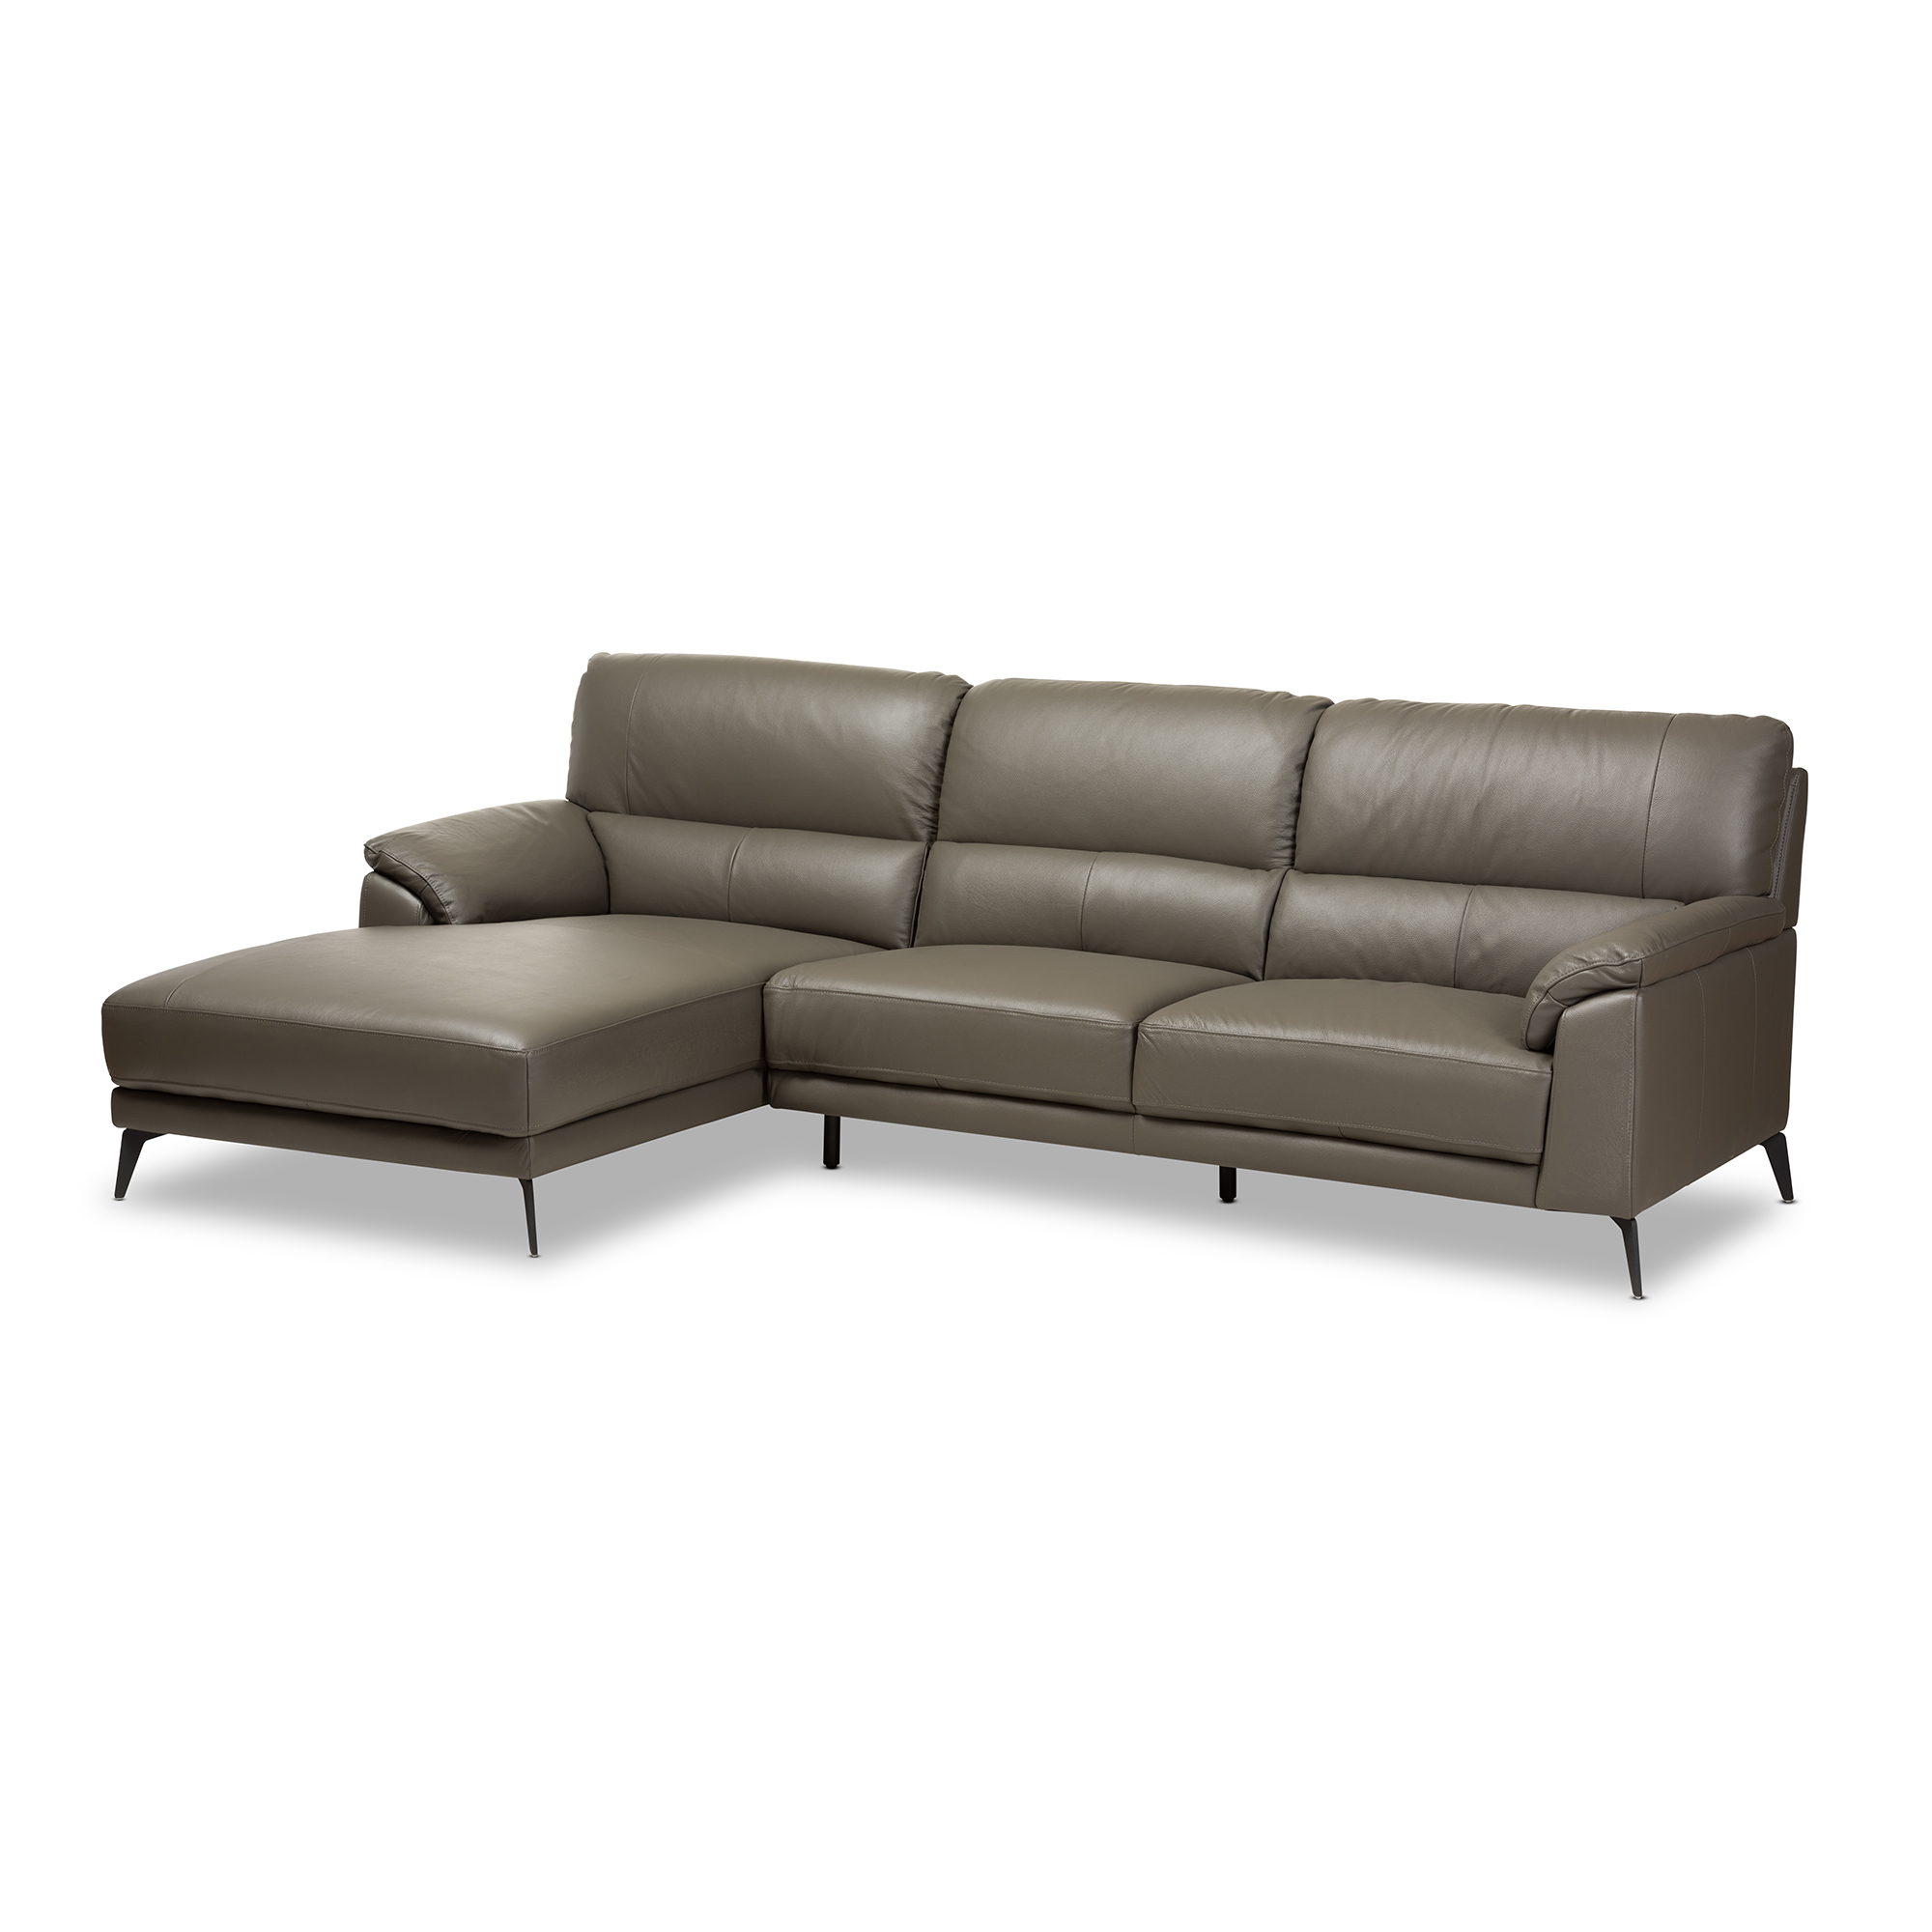 item right products chaise with sofa facing dealer sectional locator b ahfa bauhaus stationary